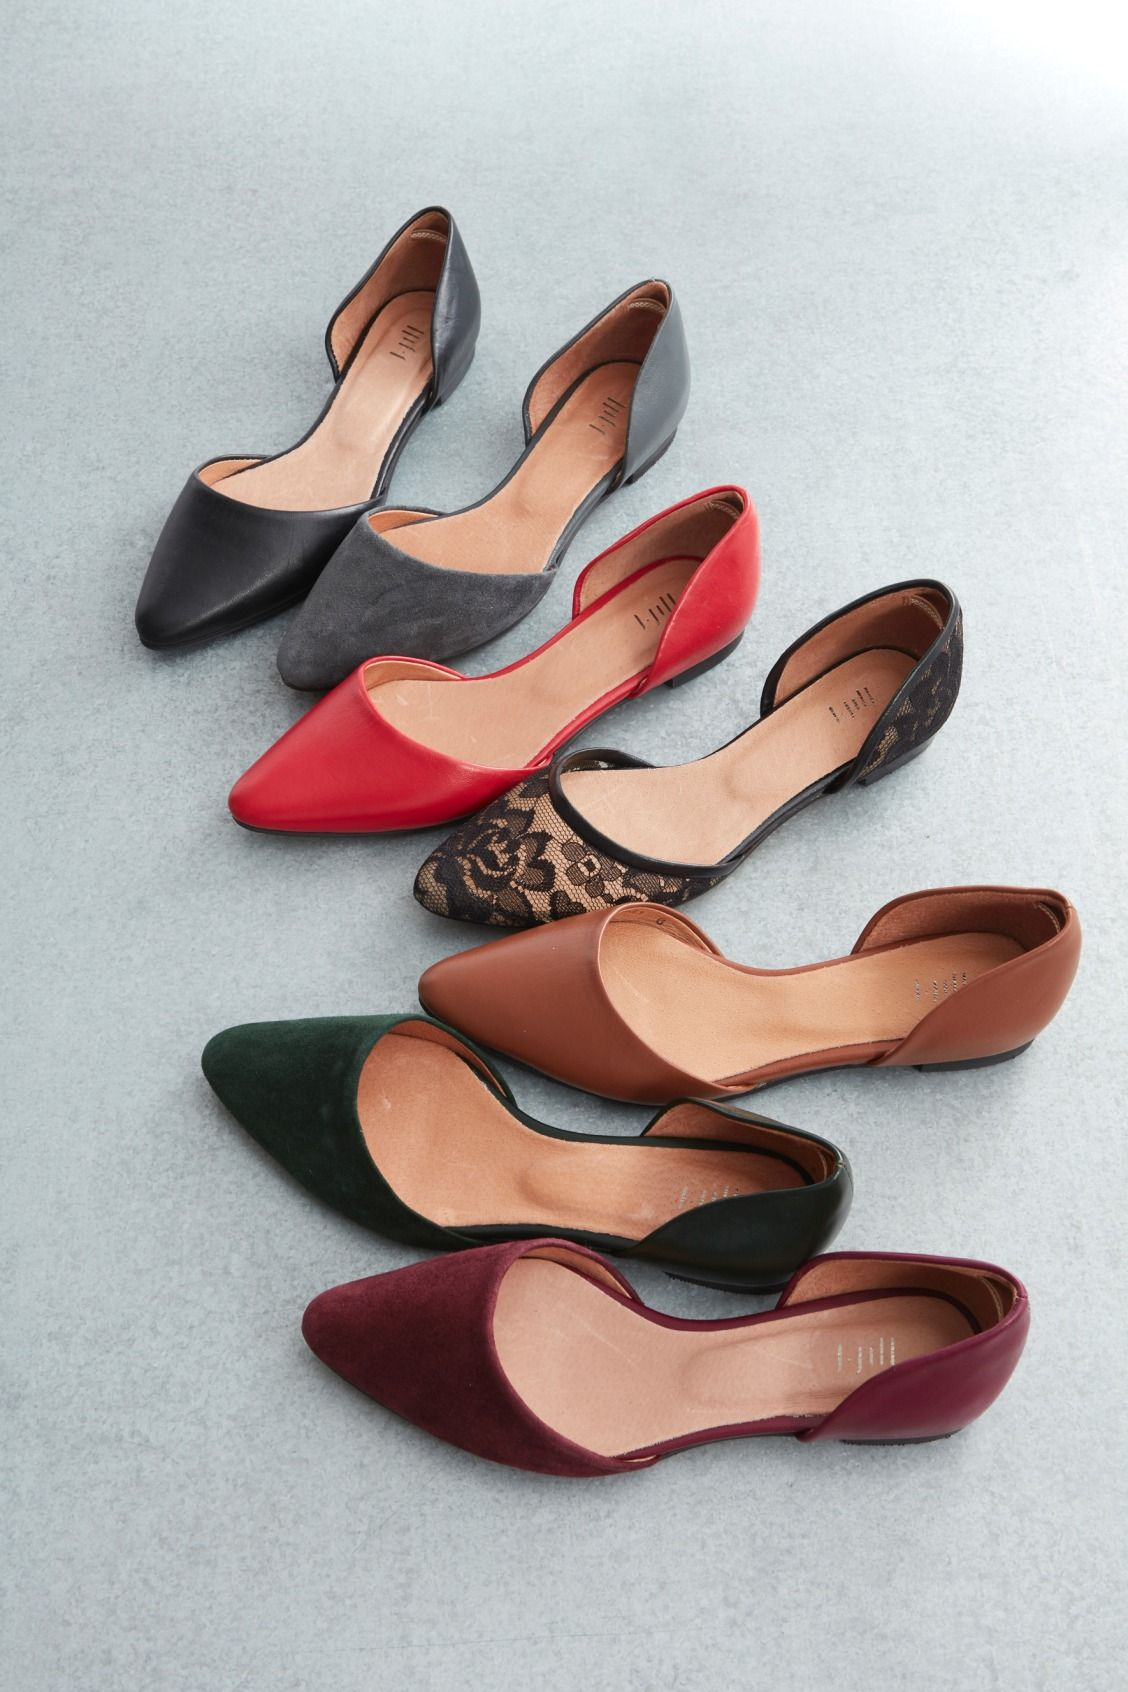 Our favorite d'Orsay flats   Classy